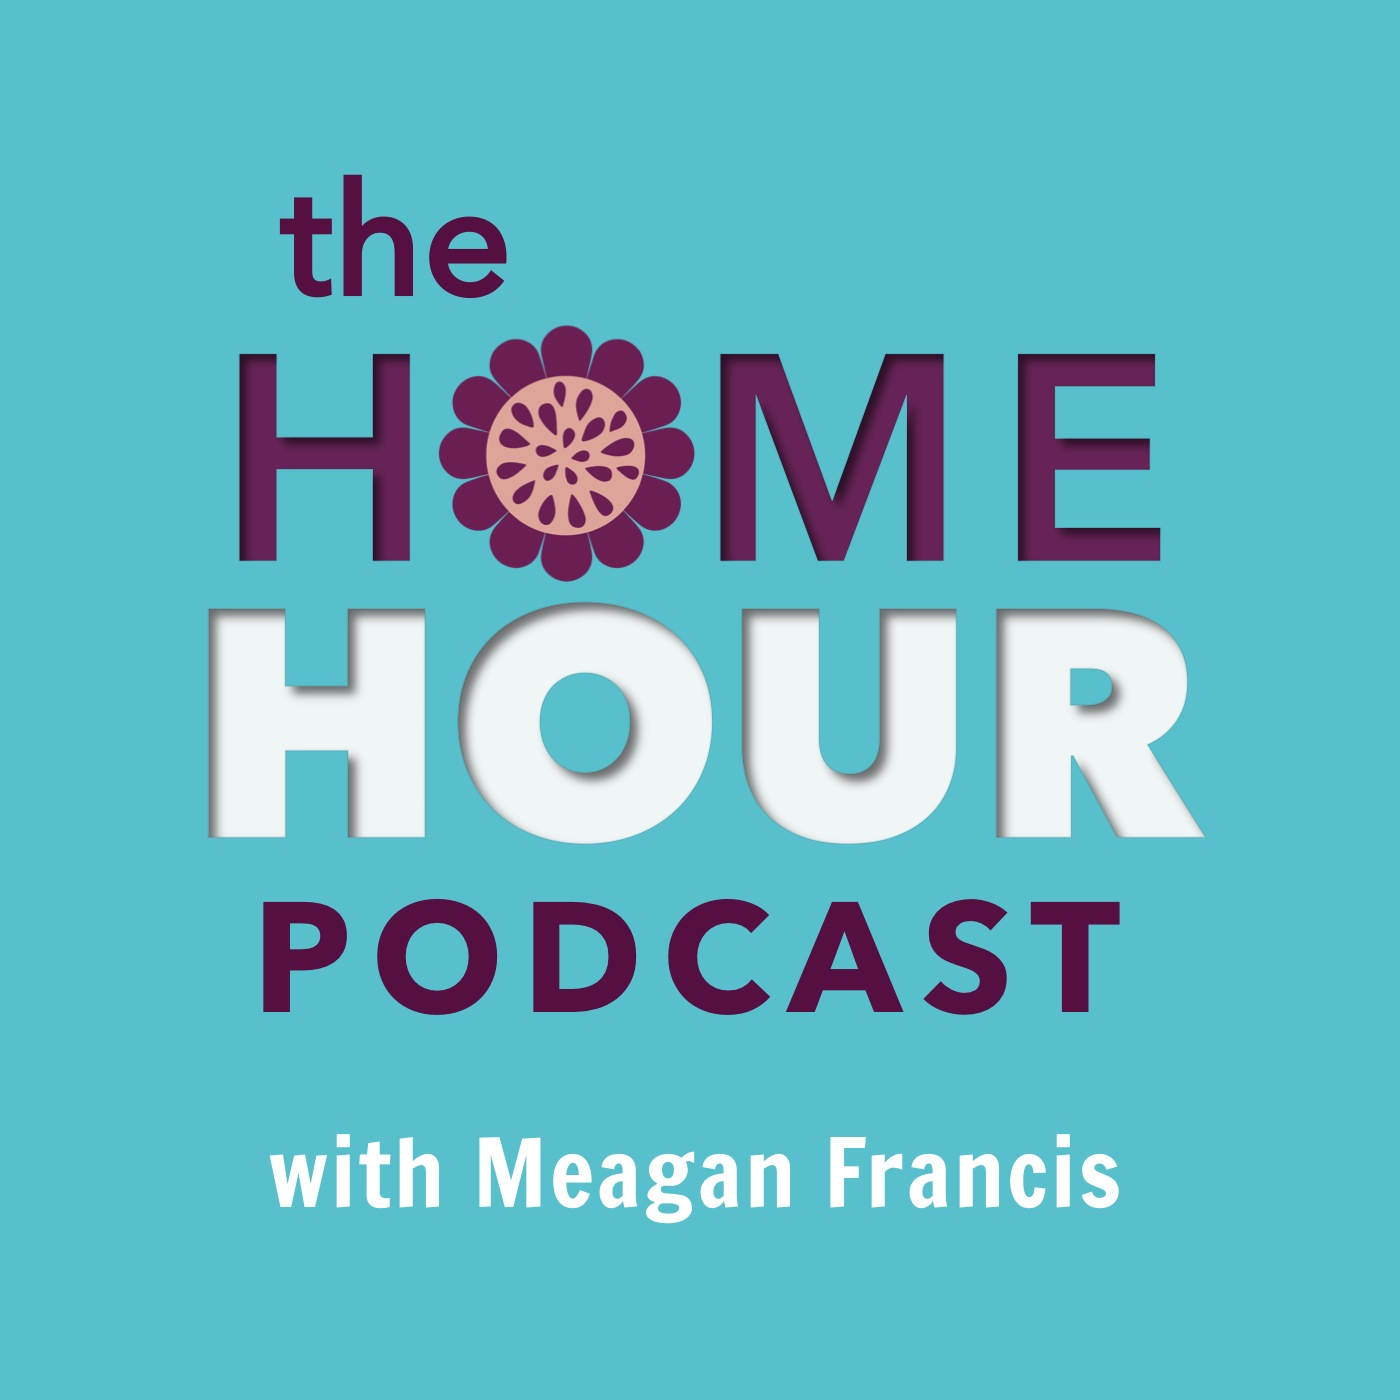 The Home Hour Podcast with Meagan Francis